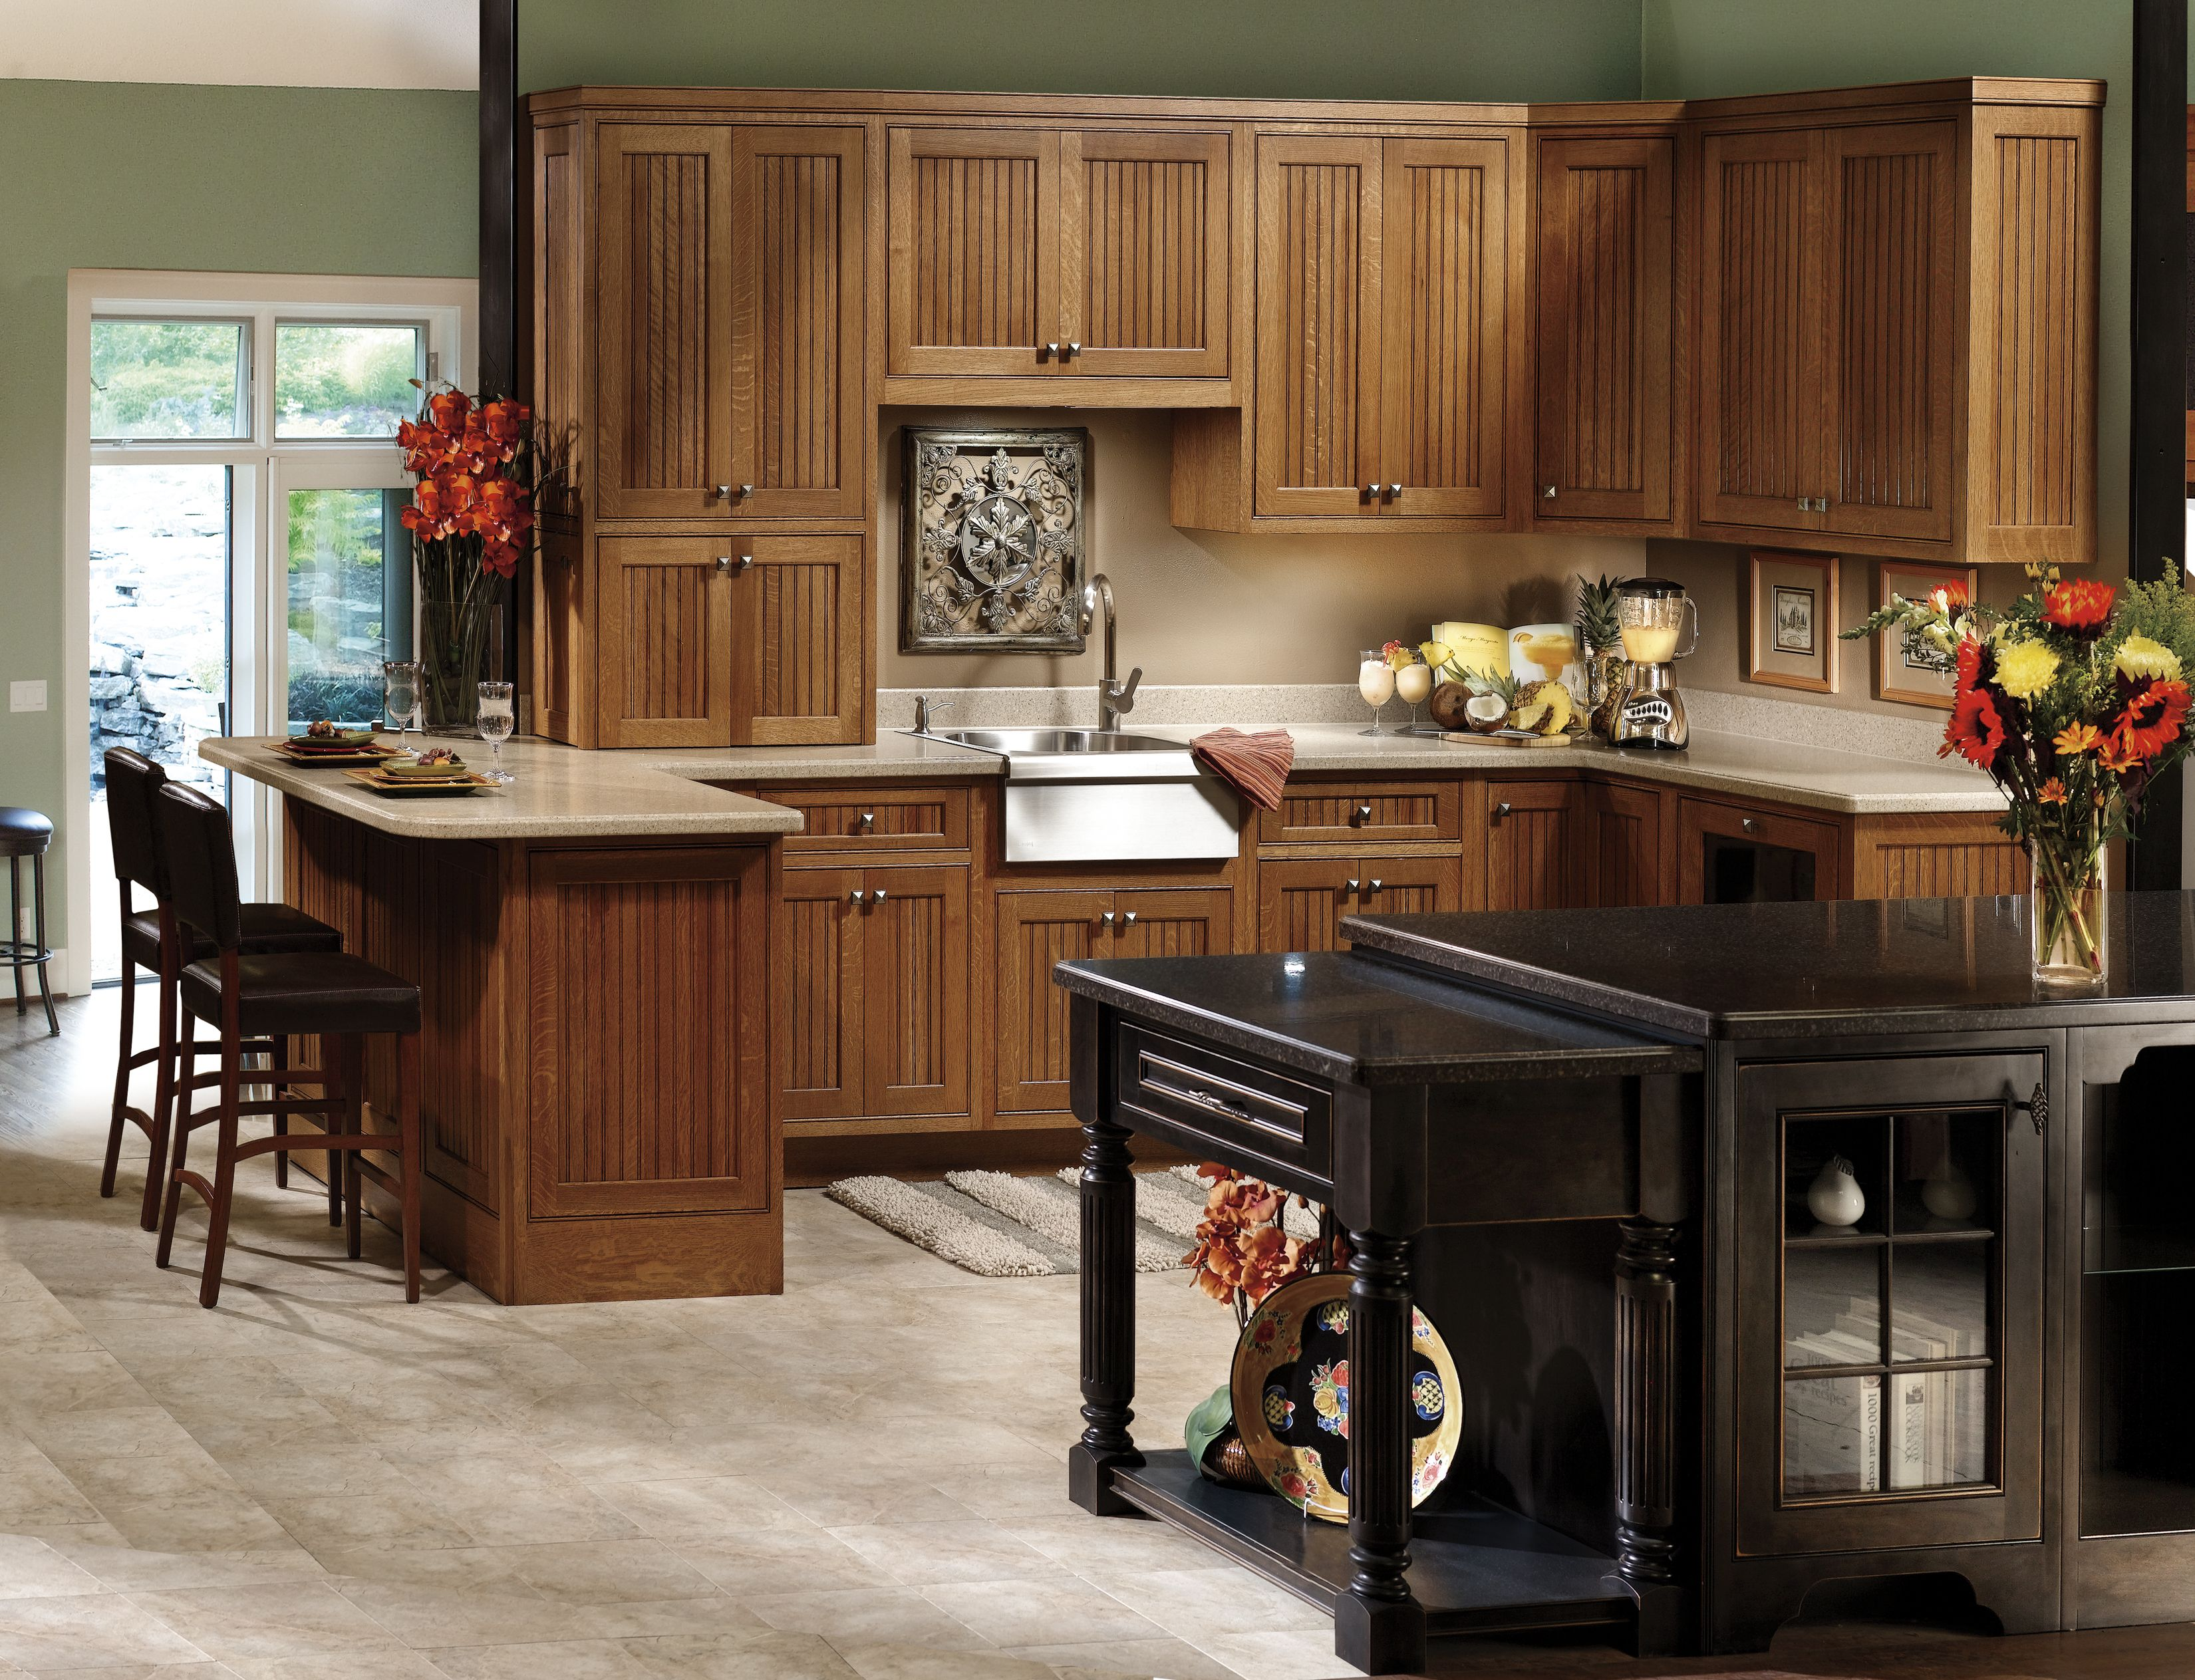 classic oak kitchen cabinets kitchen cabinet styles craftsman style kitchen craftsman kitchen on kitchen cabinets vertical lines id=31105